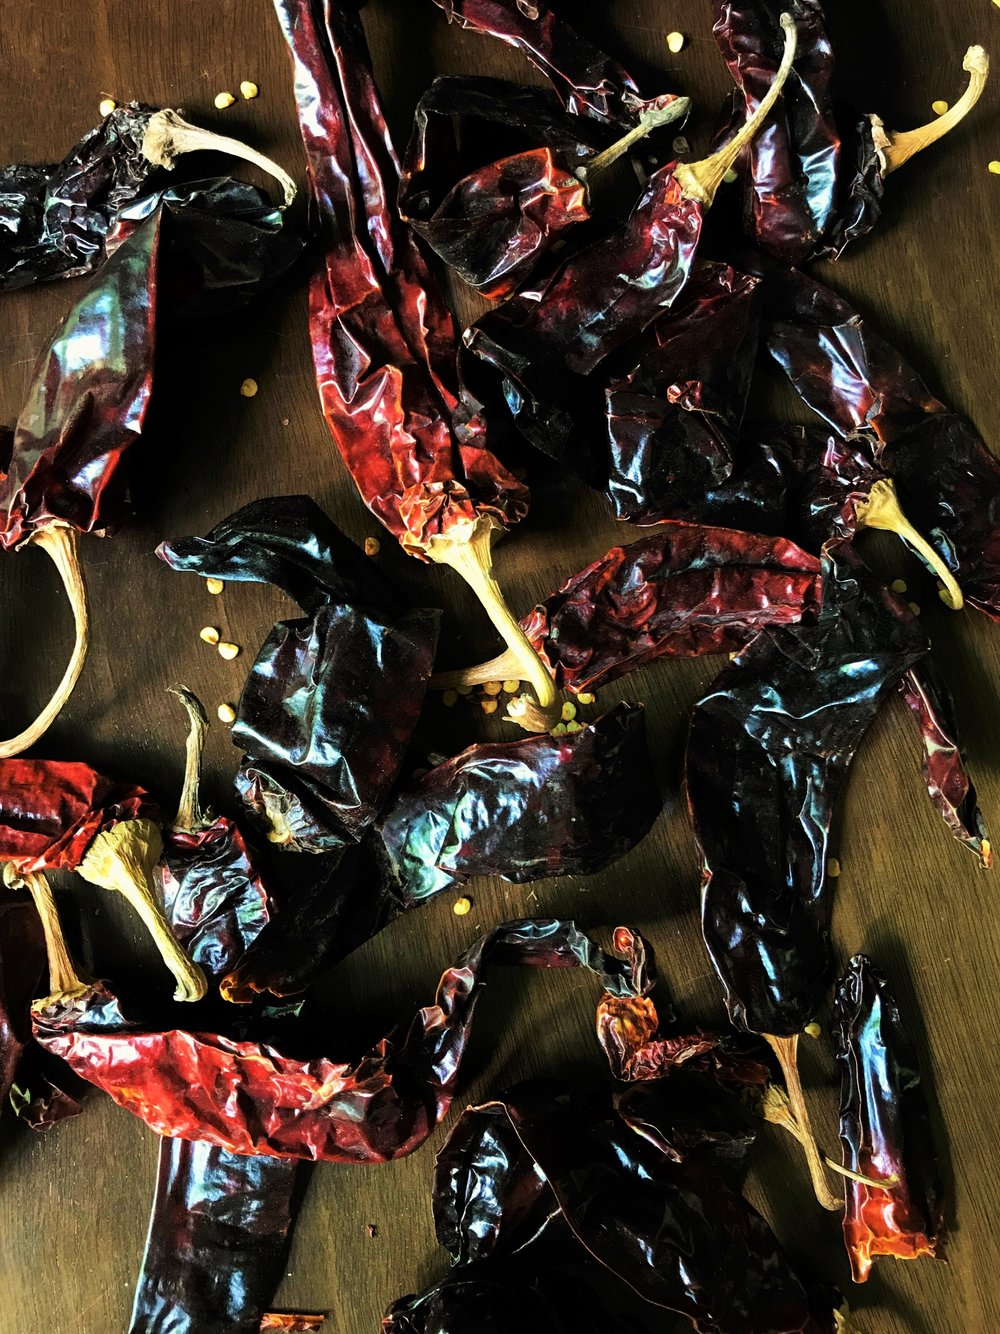 These are dried guajillo chiles in my kitchen. They're usually a deep burgundy color, but can sometimes range into a lighter shade. If they're still fairly fresh when you buy them, they should be somewhat pliable, like leather. If they're older and brittle, you can still use them; you'll just toast them in whatever pieces they break into as you work.